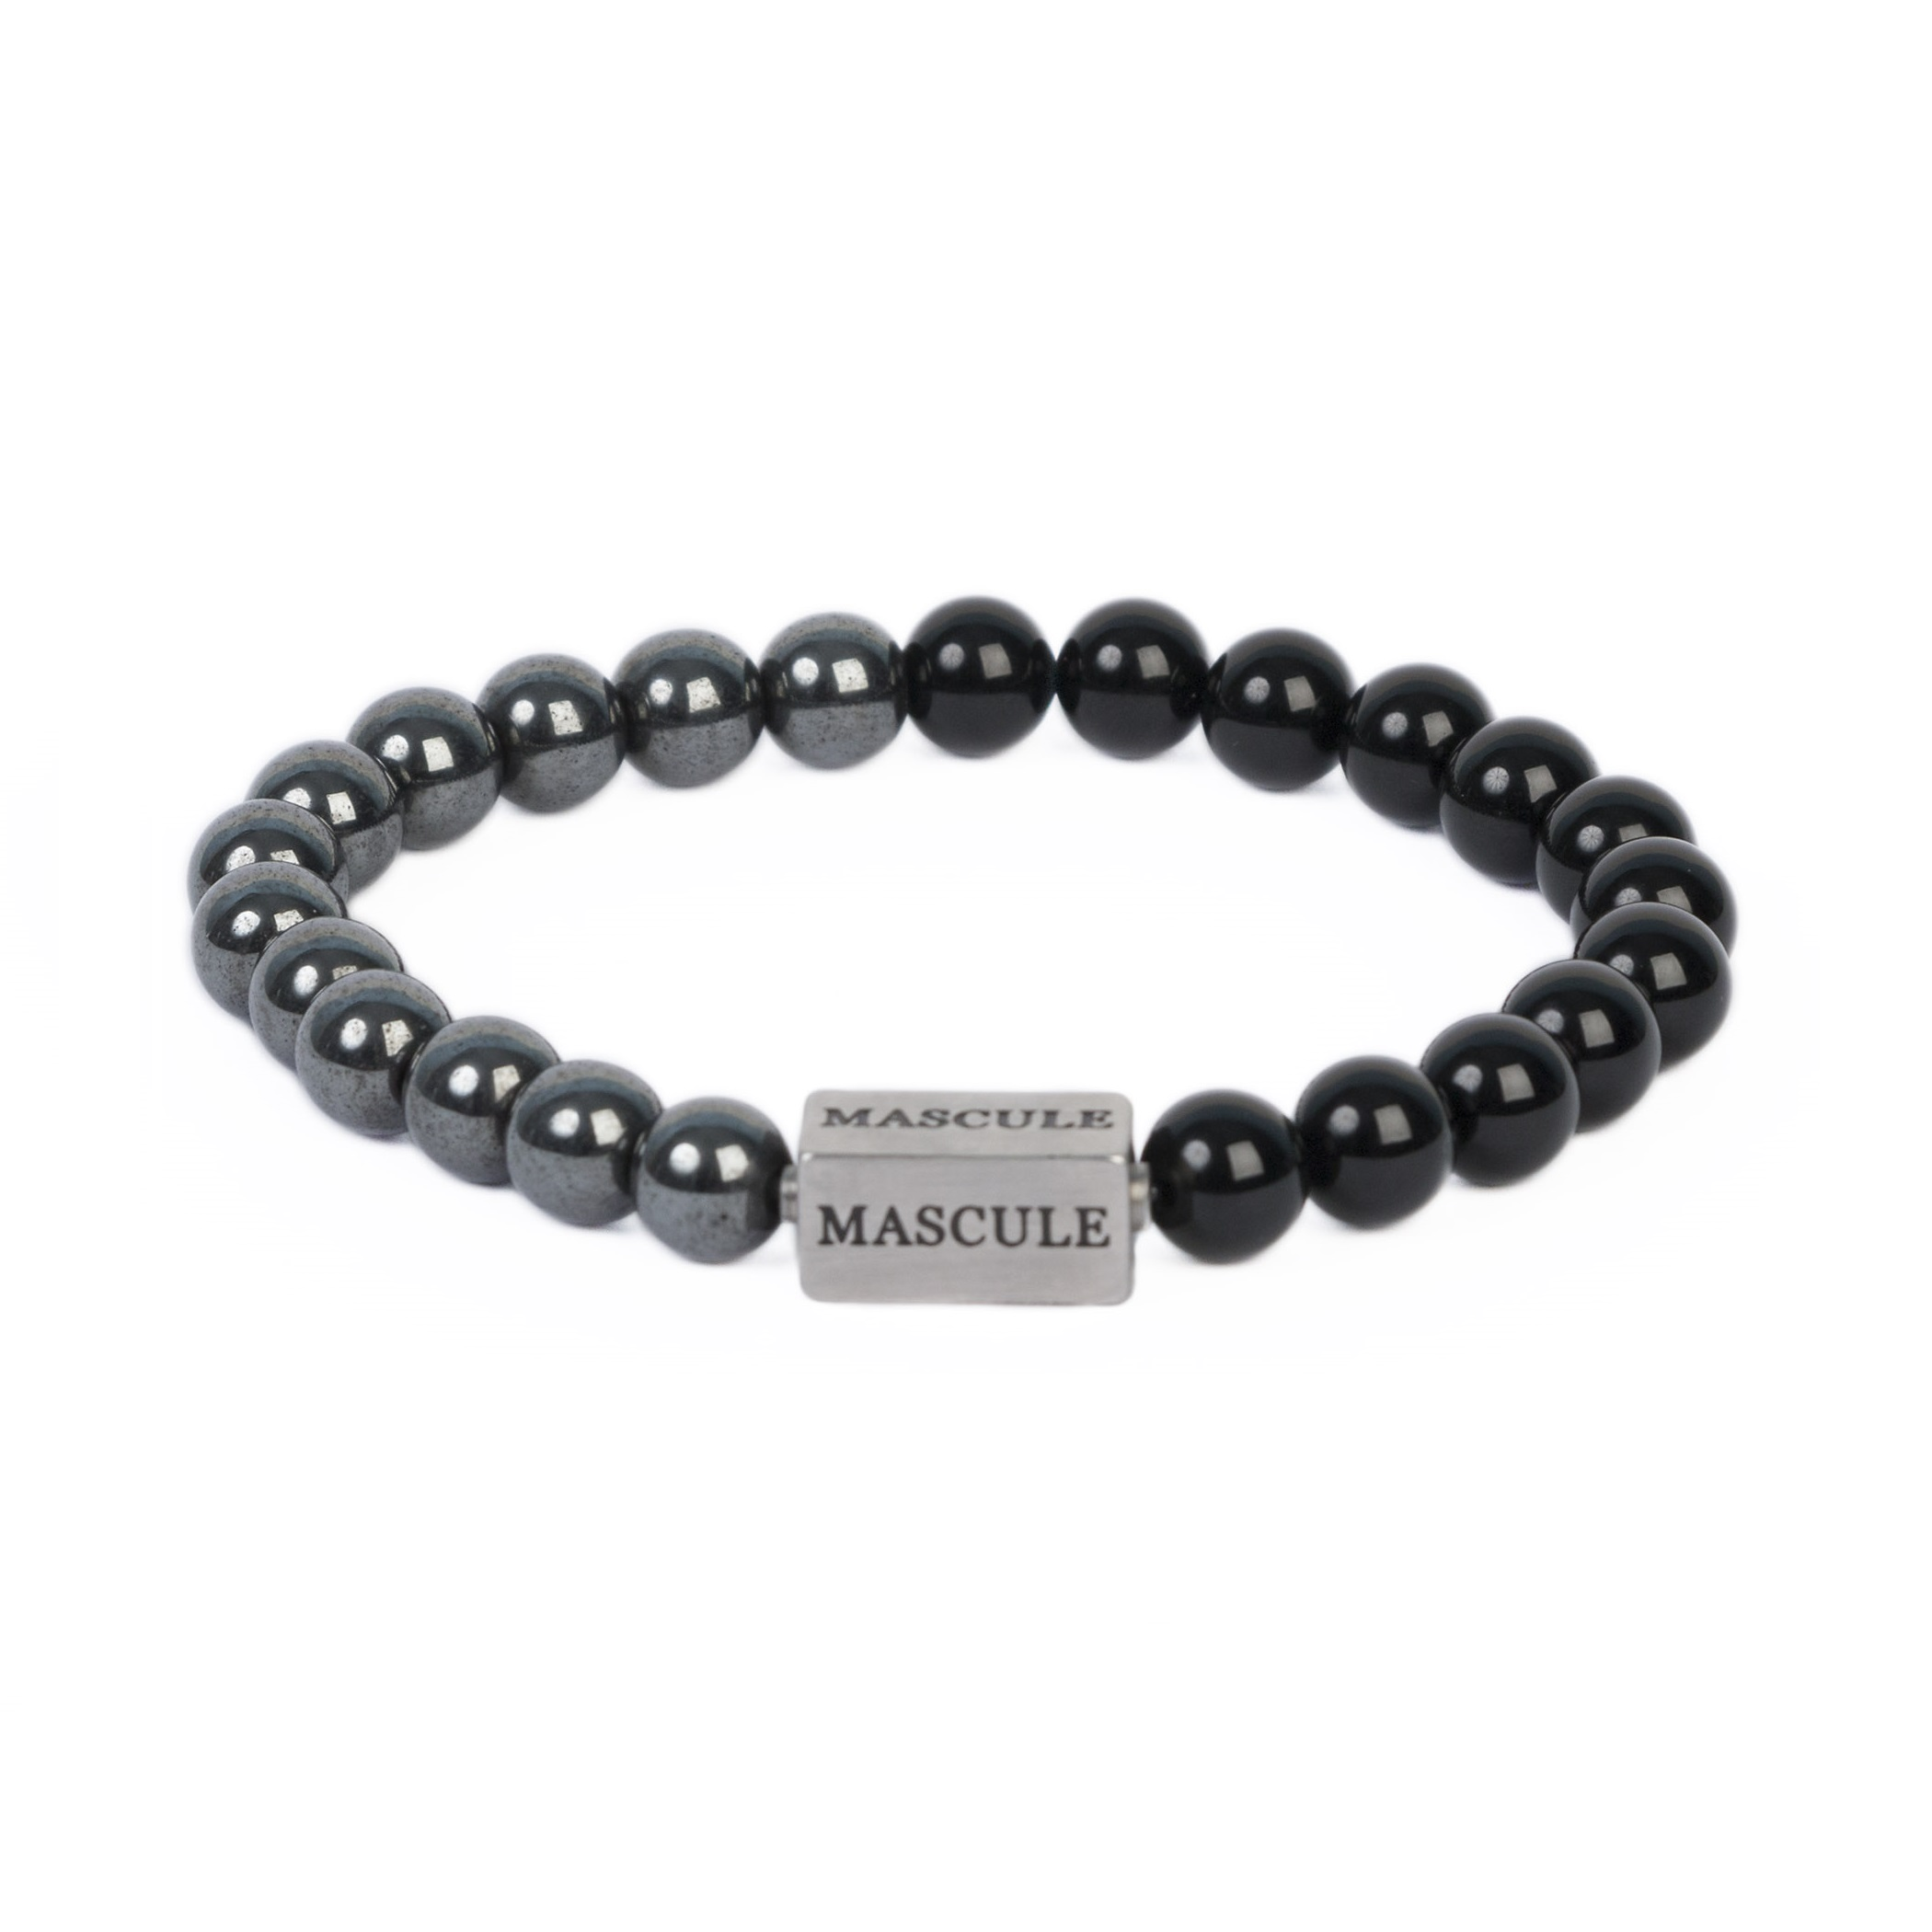 Mens Beaded Bracelet - Krypton_Radiance_Onyx_glossy_hematite_MAS8104_8mm.jpg